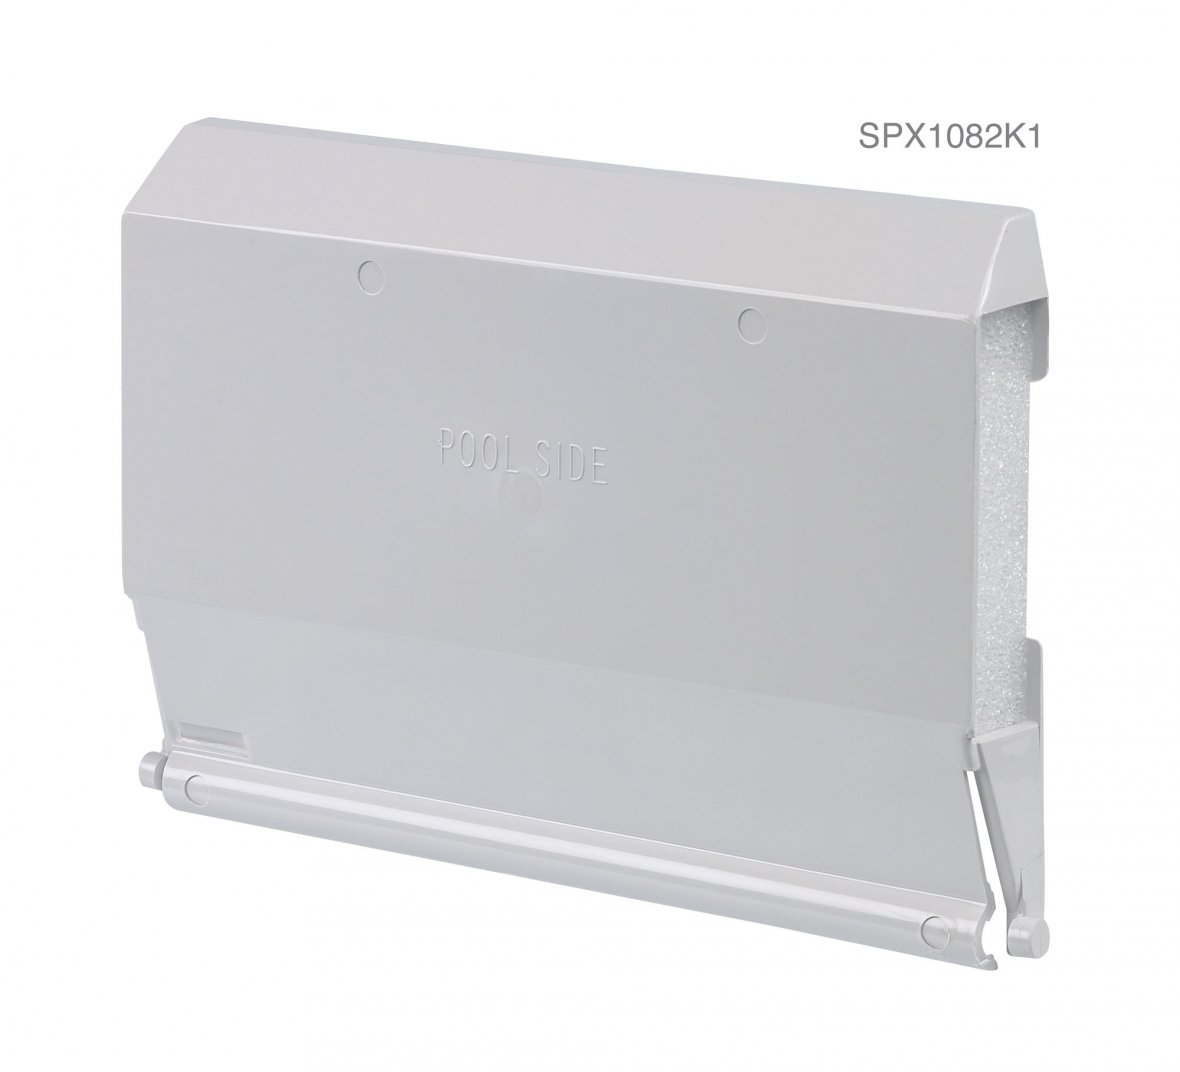 Skimmer weir door for Hayward skimmer